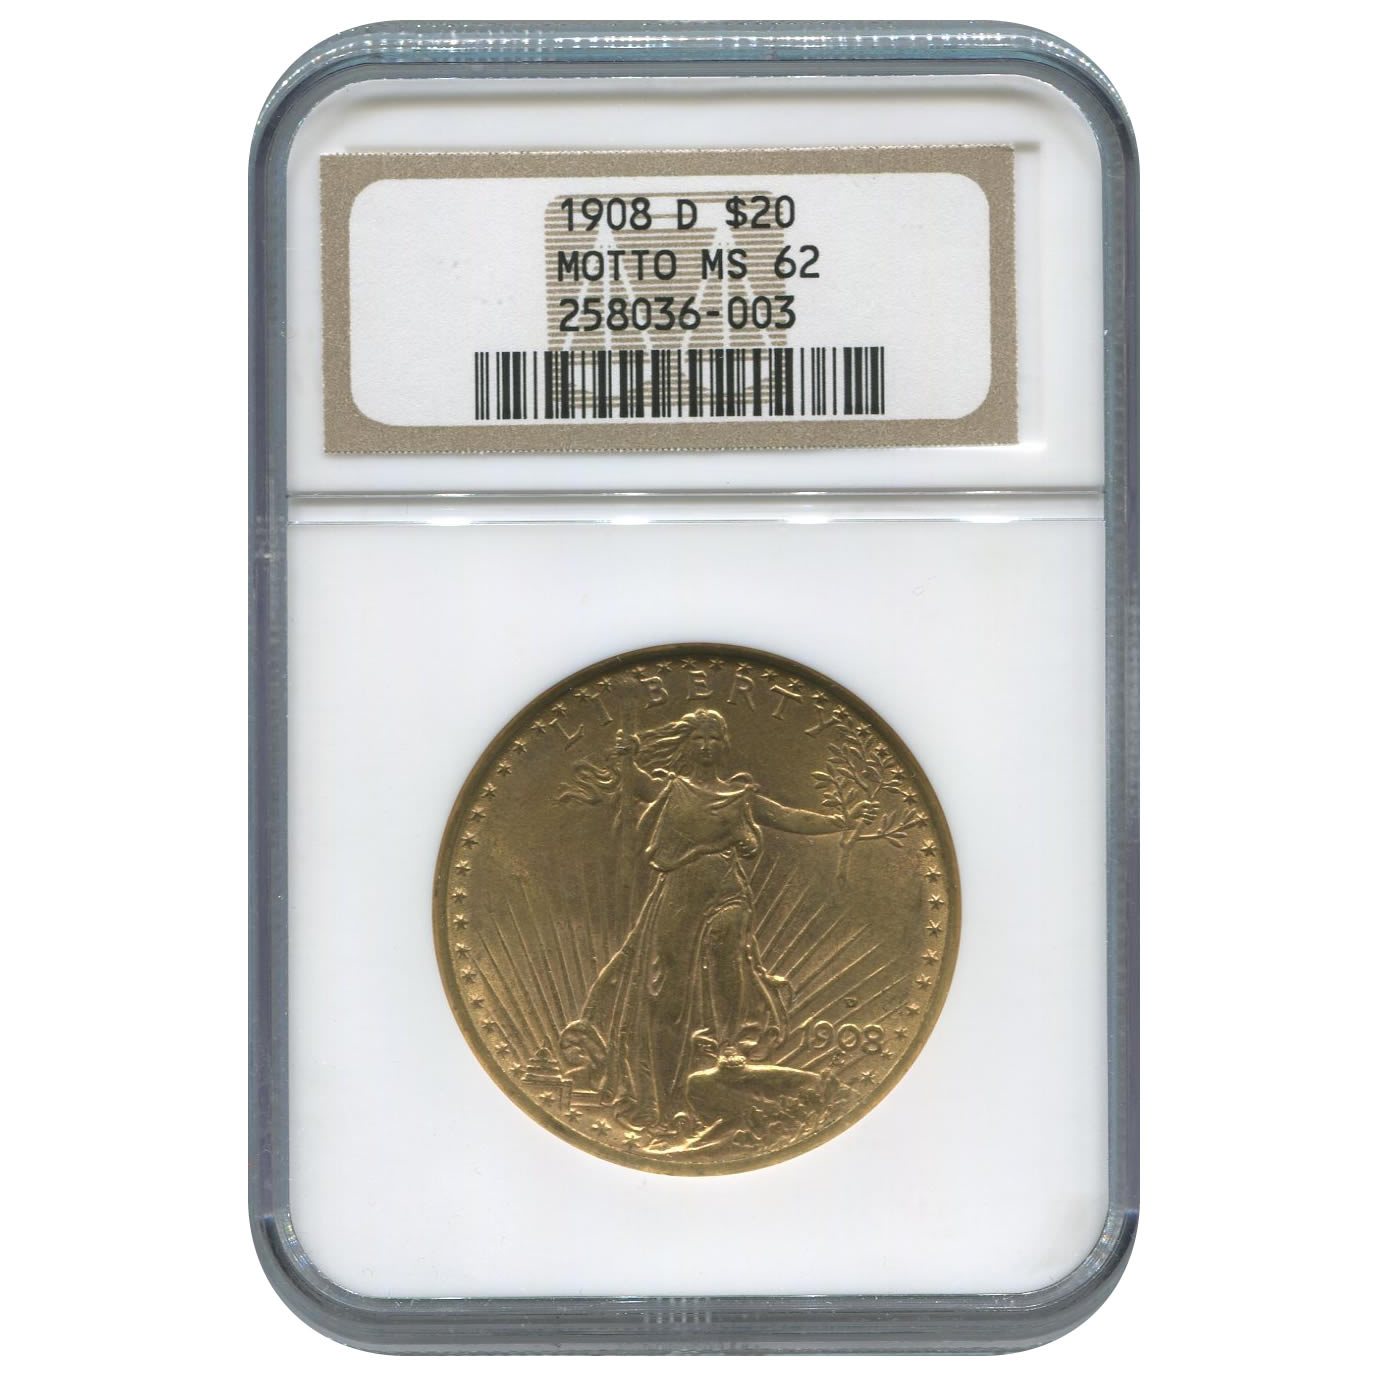 Certified $20 St Gaudens 1908-D MS62 NGC